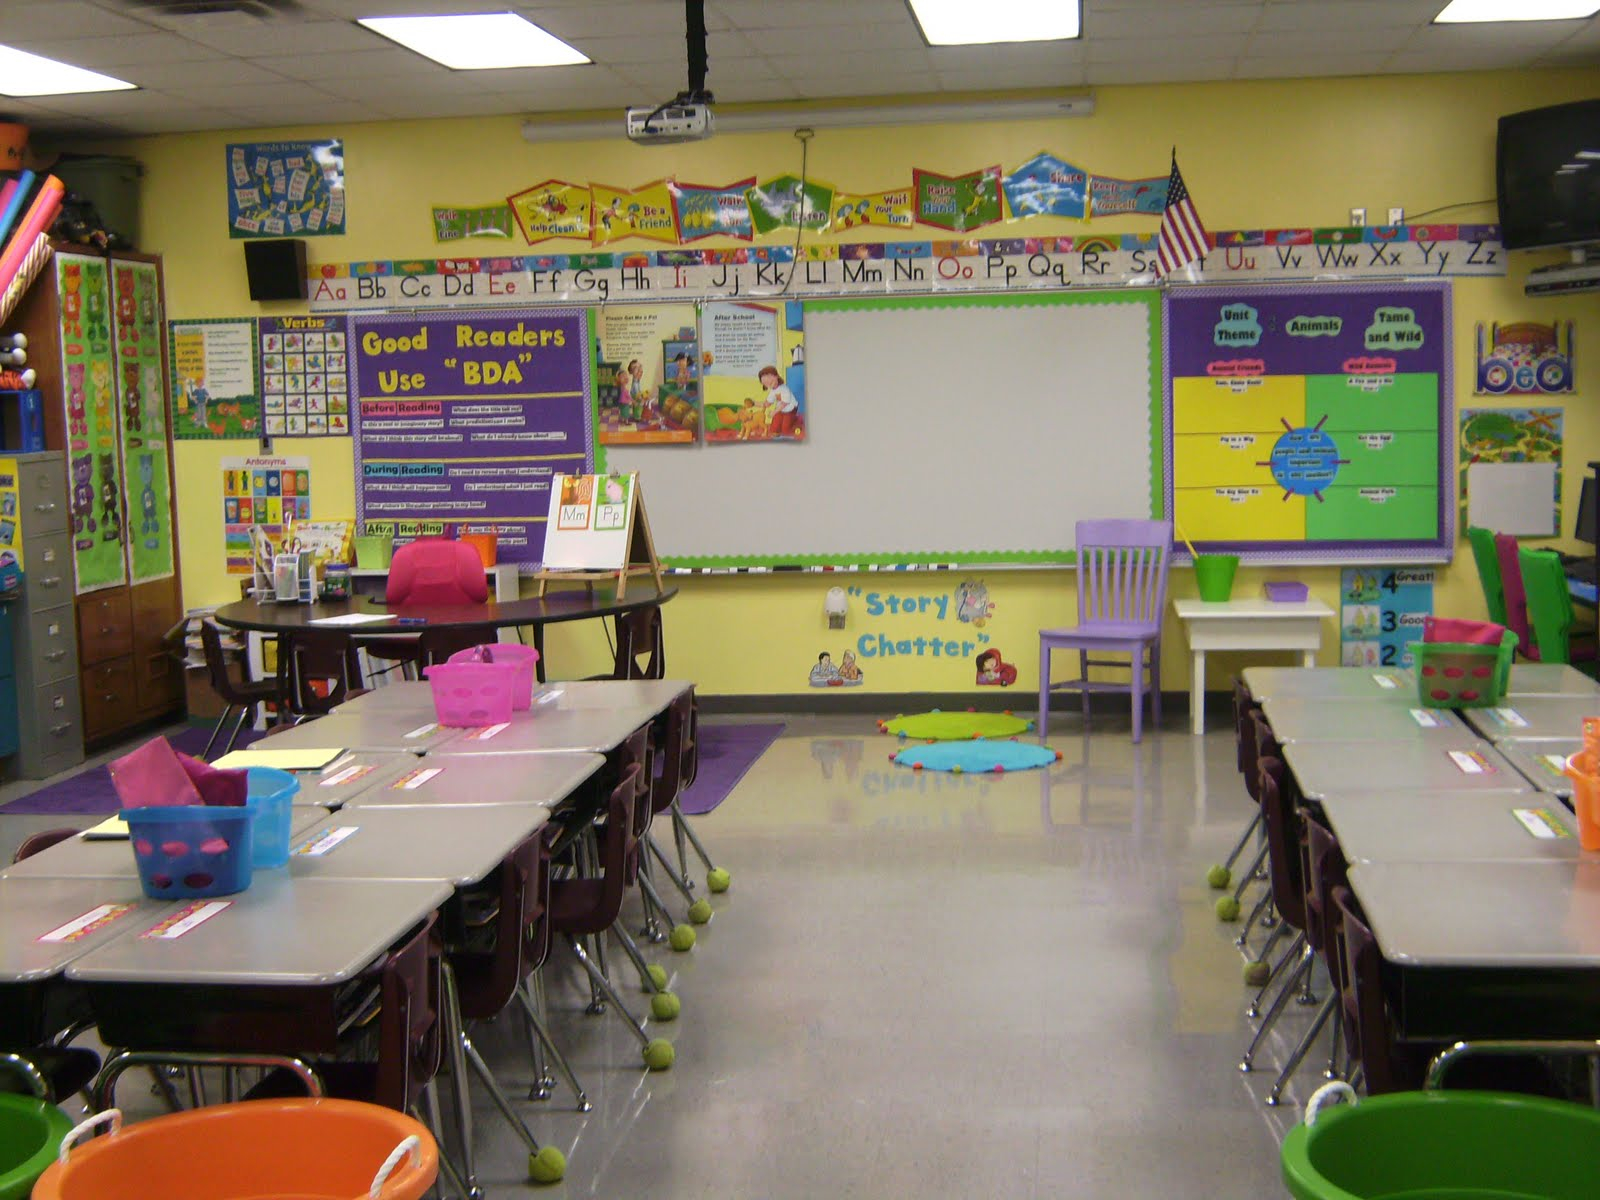 Glamorous Lovely Classroom Decorating Themes : Restmeyersca Home Design - Best within Classroom Decorating Themes